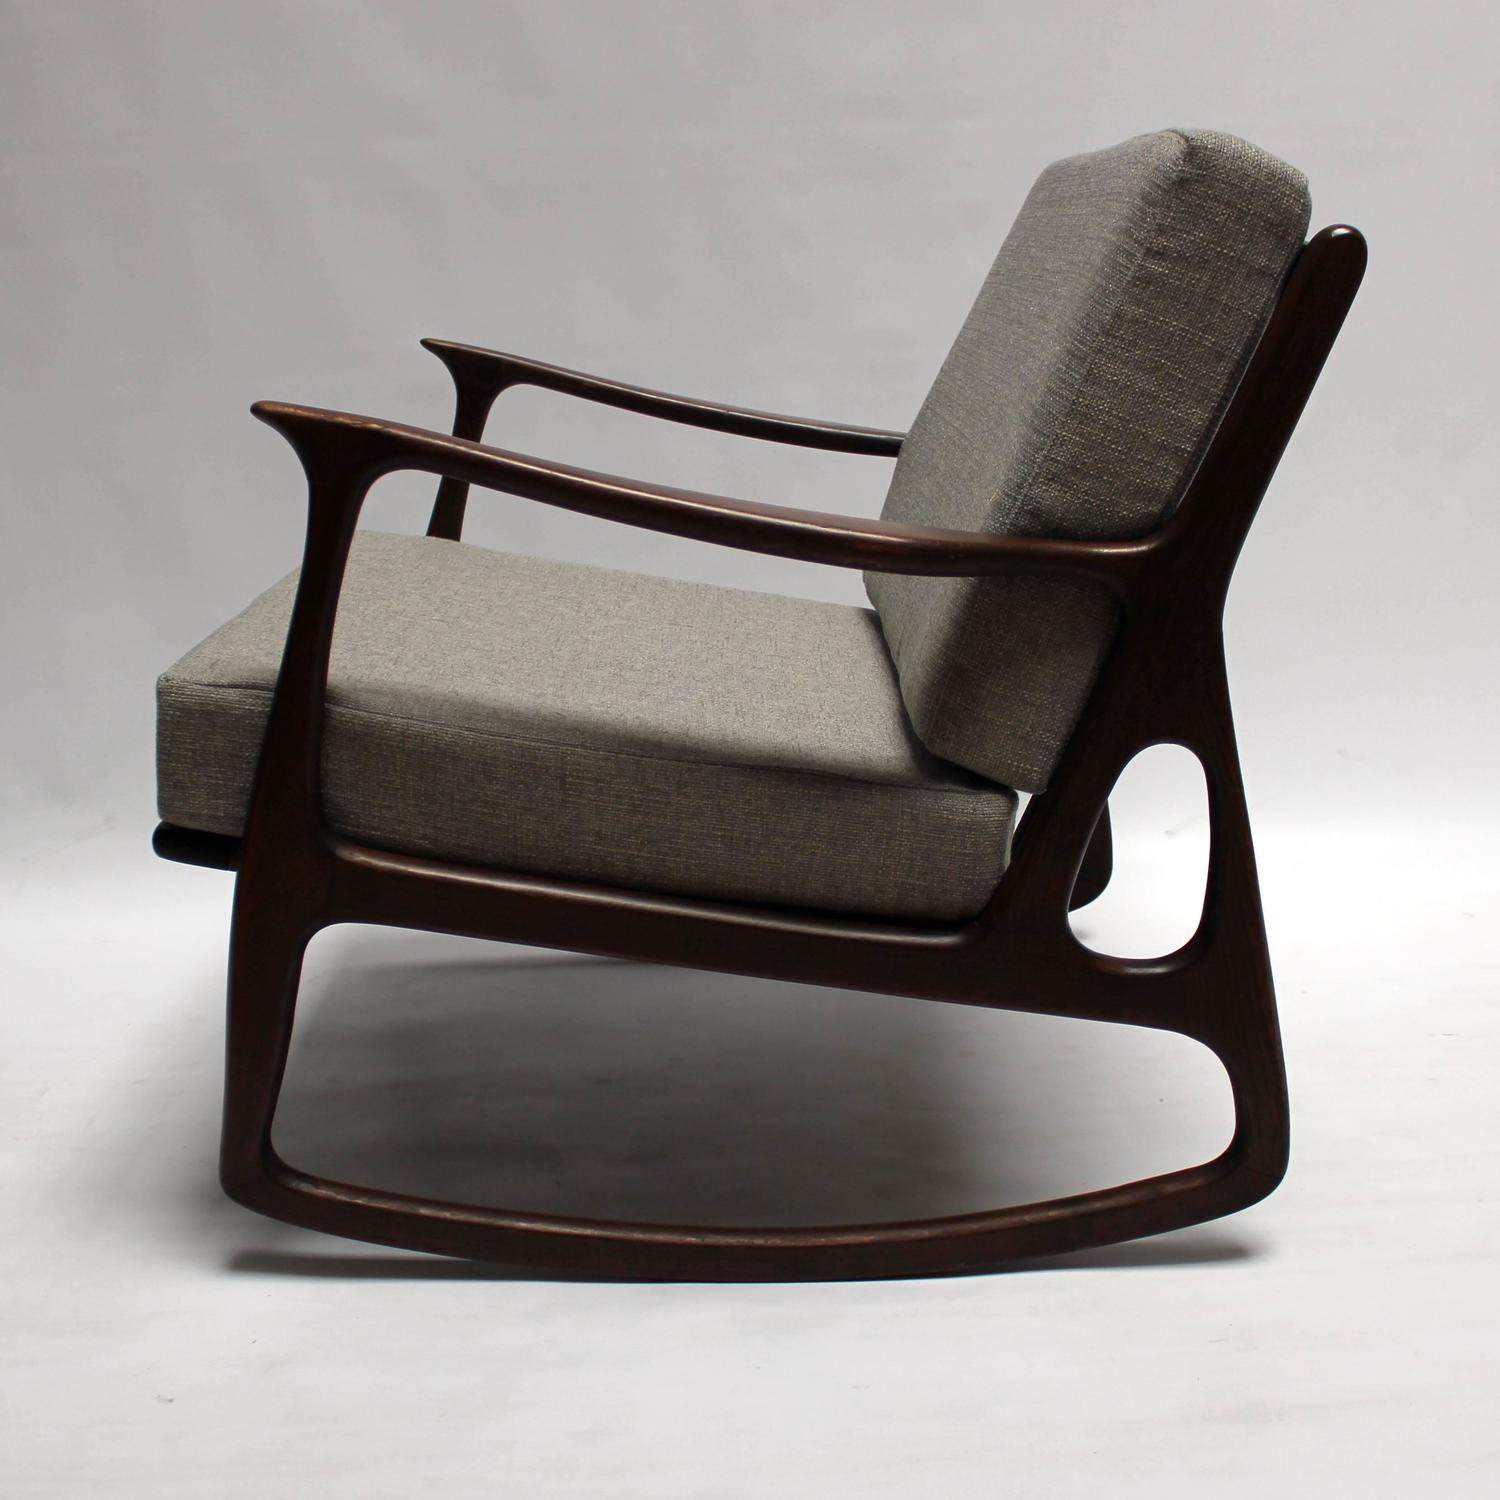 Mid century modern italian upholstered walnut rocking chair at 1stdibs - Rocking chair moderne ...